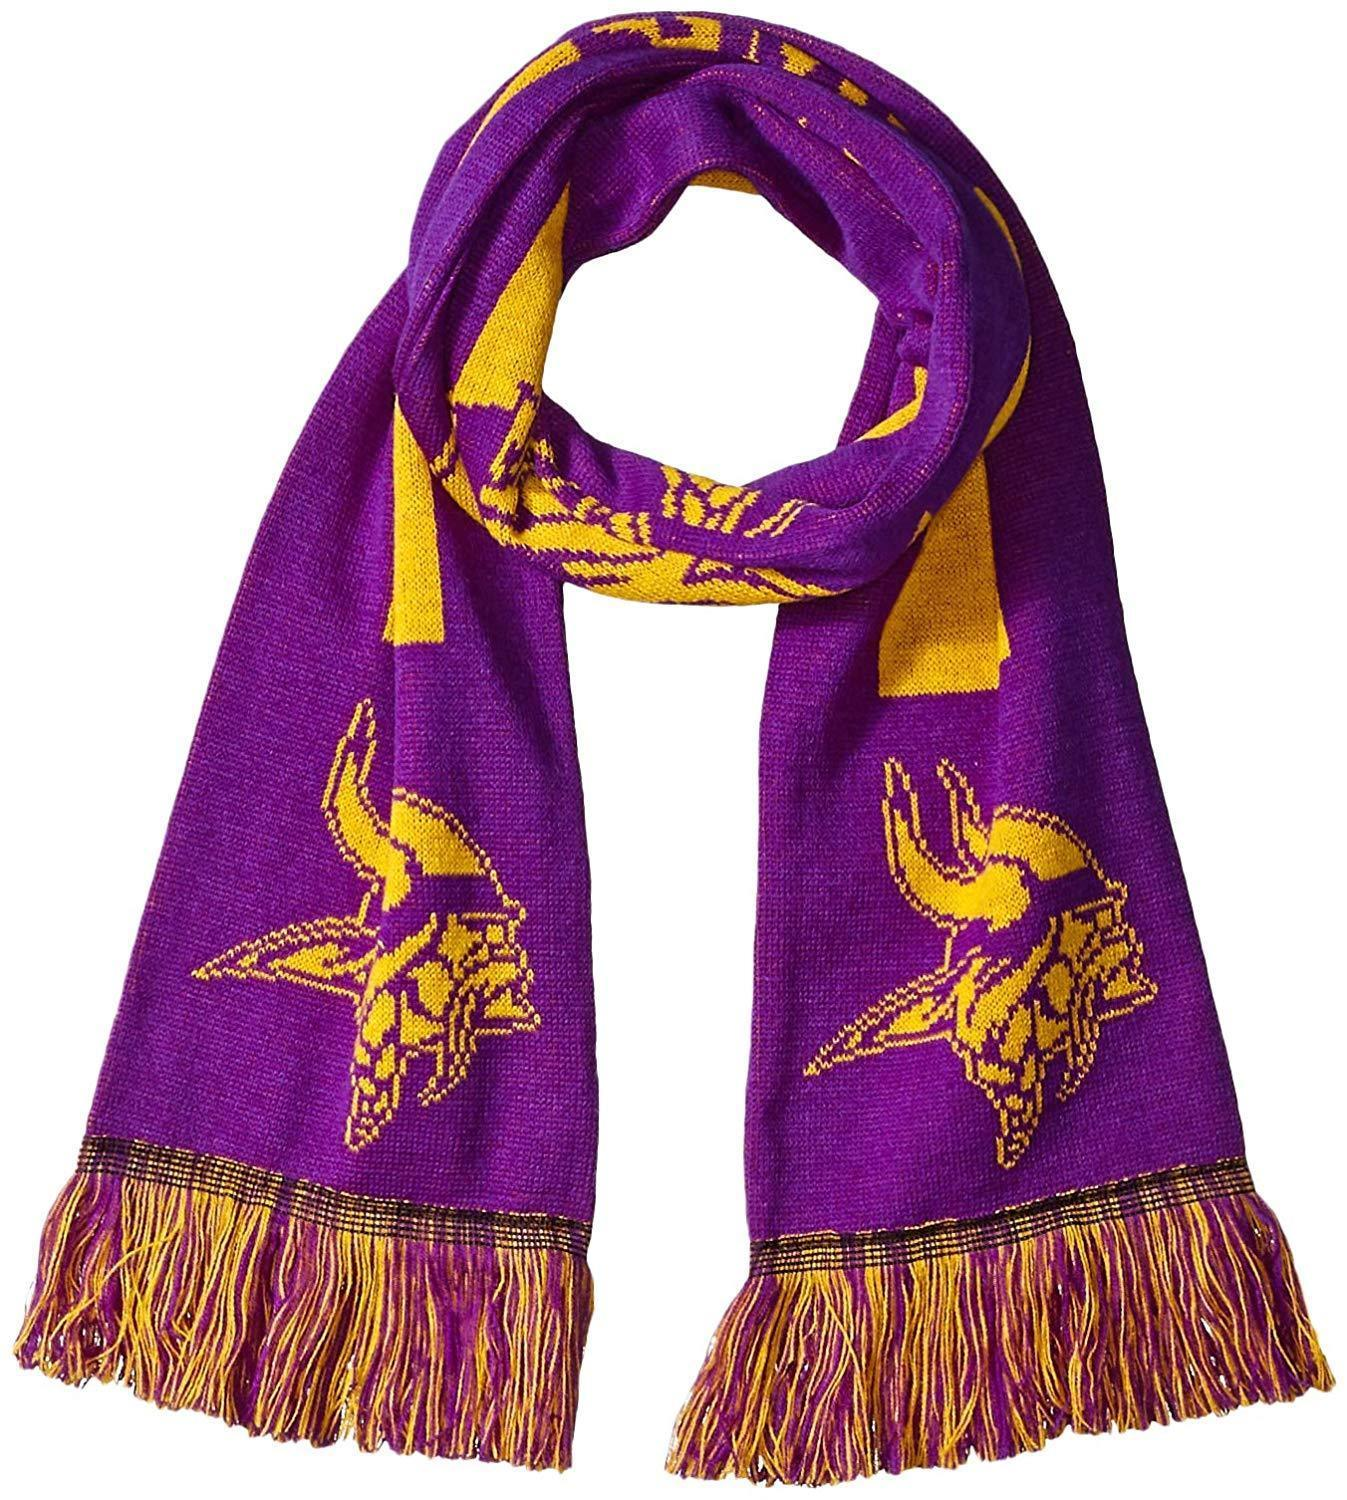 """NFL Minnesota Vikings 2016 Big Logo Scarf 64"""" x 7"""" by Forever Collectibles - $27.95"""